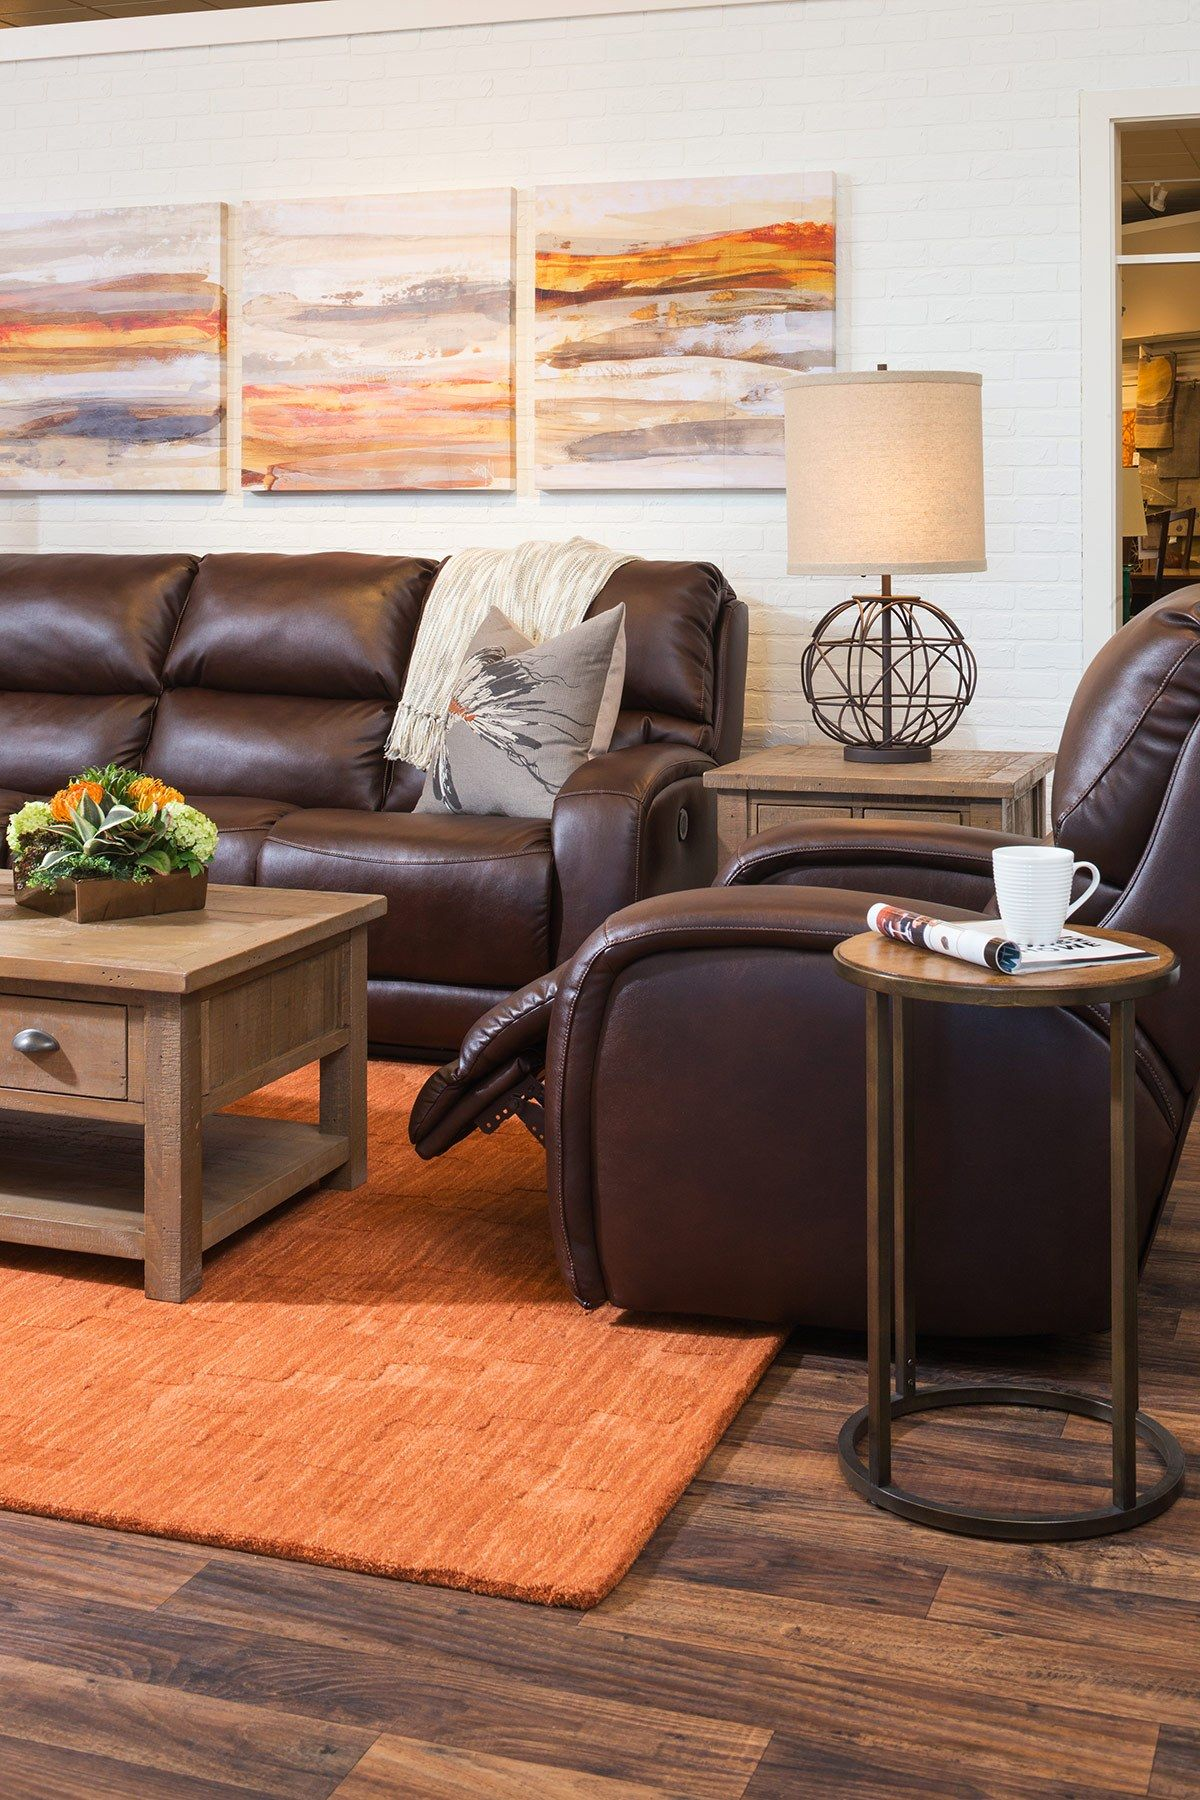 Decorating With Brown Leather Furniture Tips For A Lighter Brighter Look Schneiderman S The Blog Design And Decorating Brown Living Room Decor Living Room Decor Brown Couch Dark Brown Couch Living Room